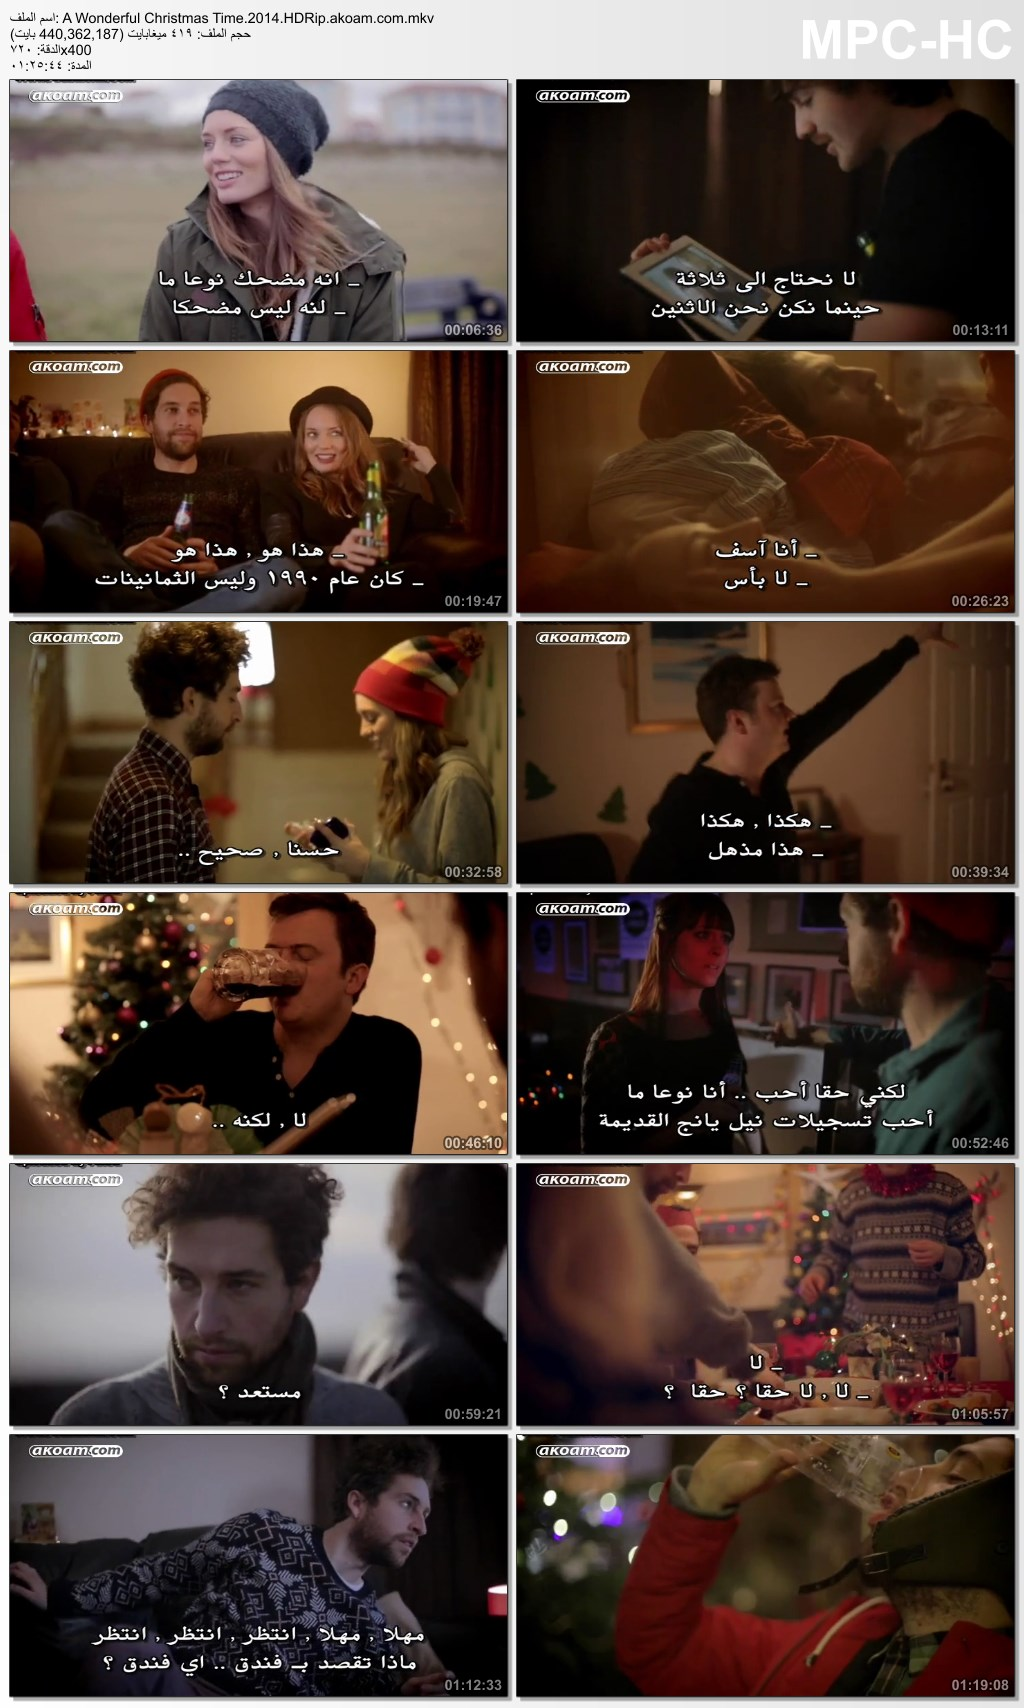 A Wonderful Christmas Time,A Wonderful Christmas Time  2014,الدراما,الكوميديا